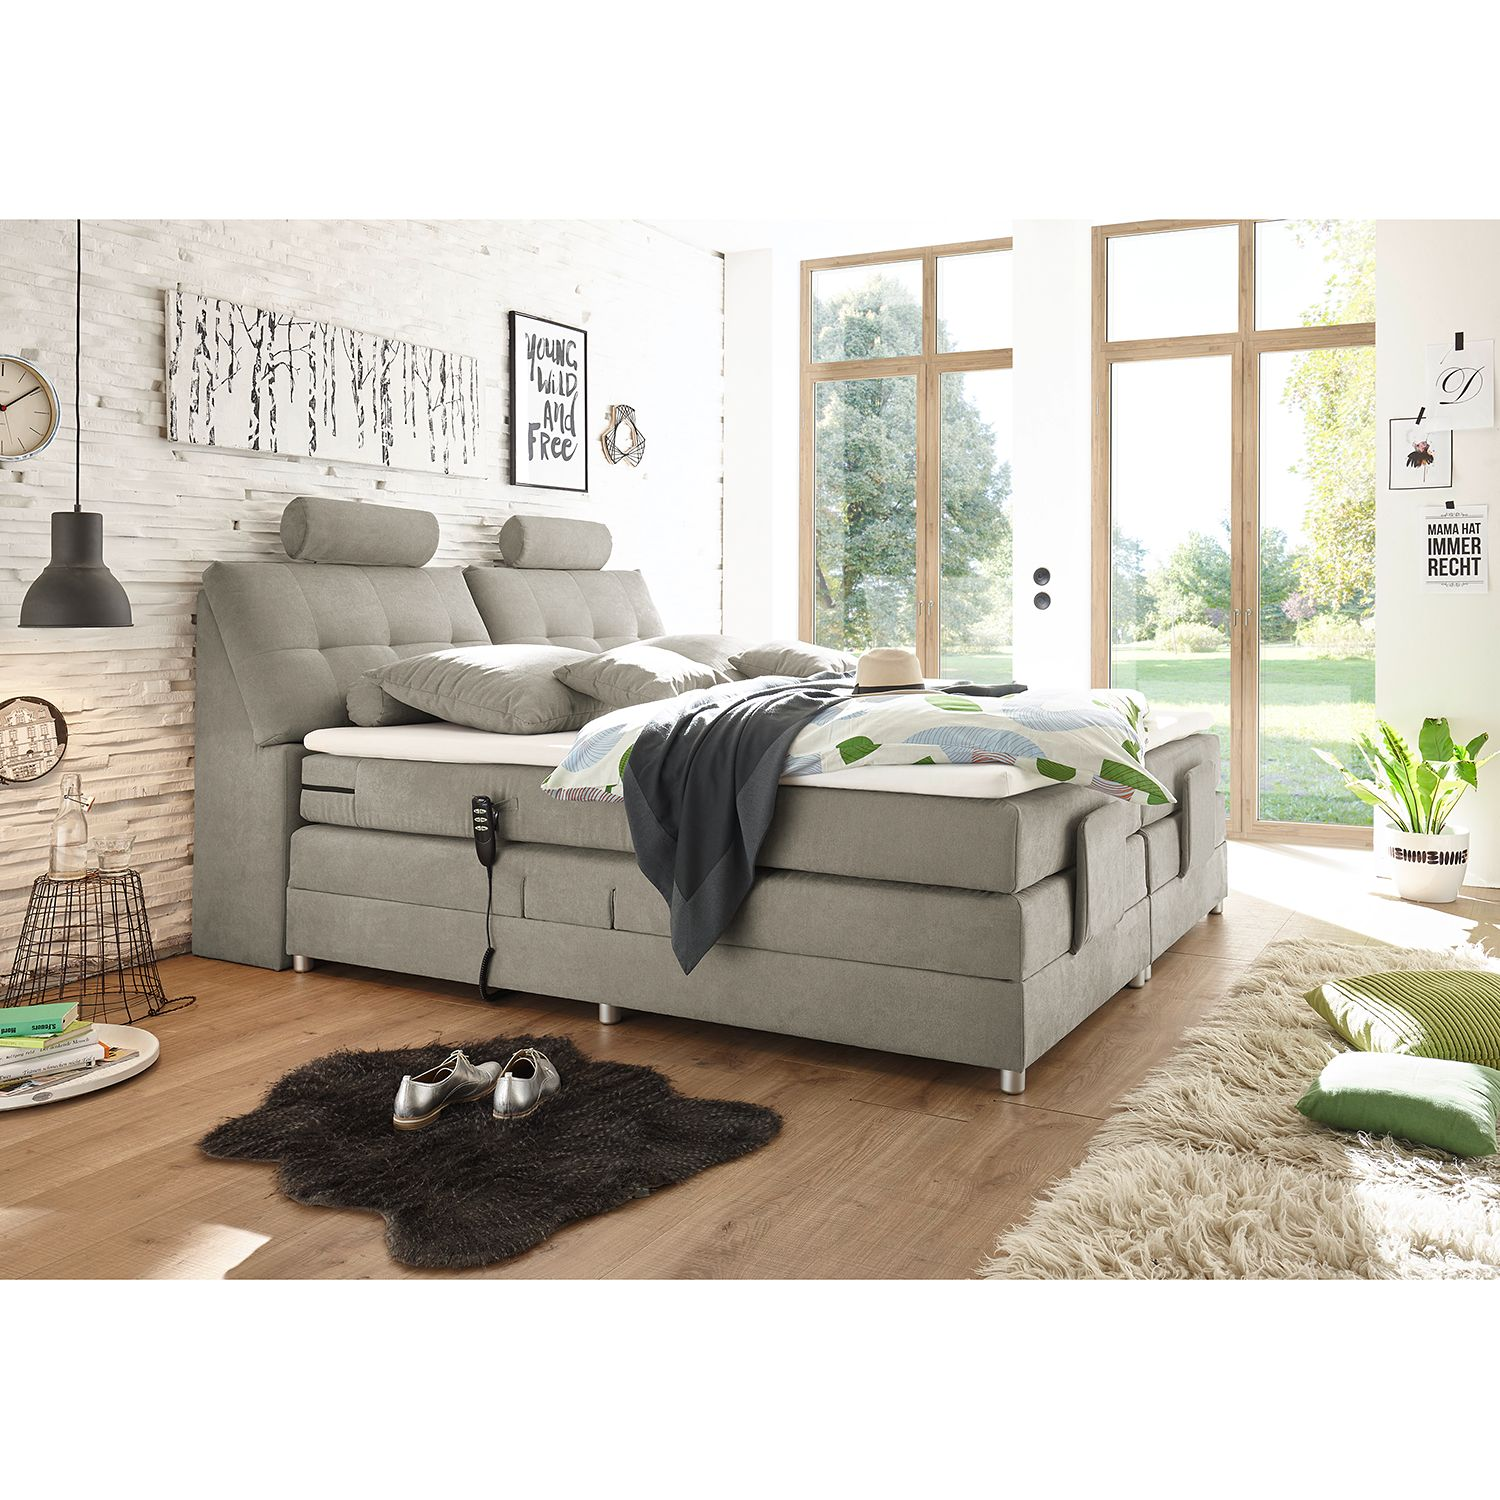 Home24 Boxspring Neiras (incl. topper), Fredriks